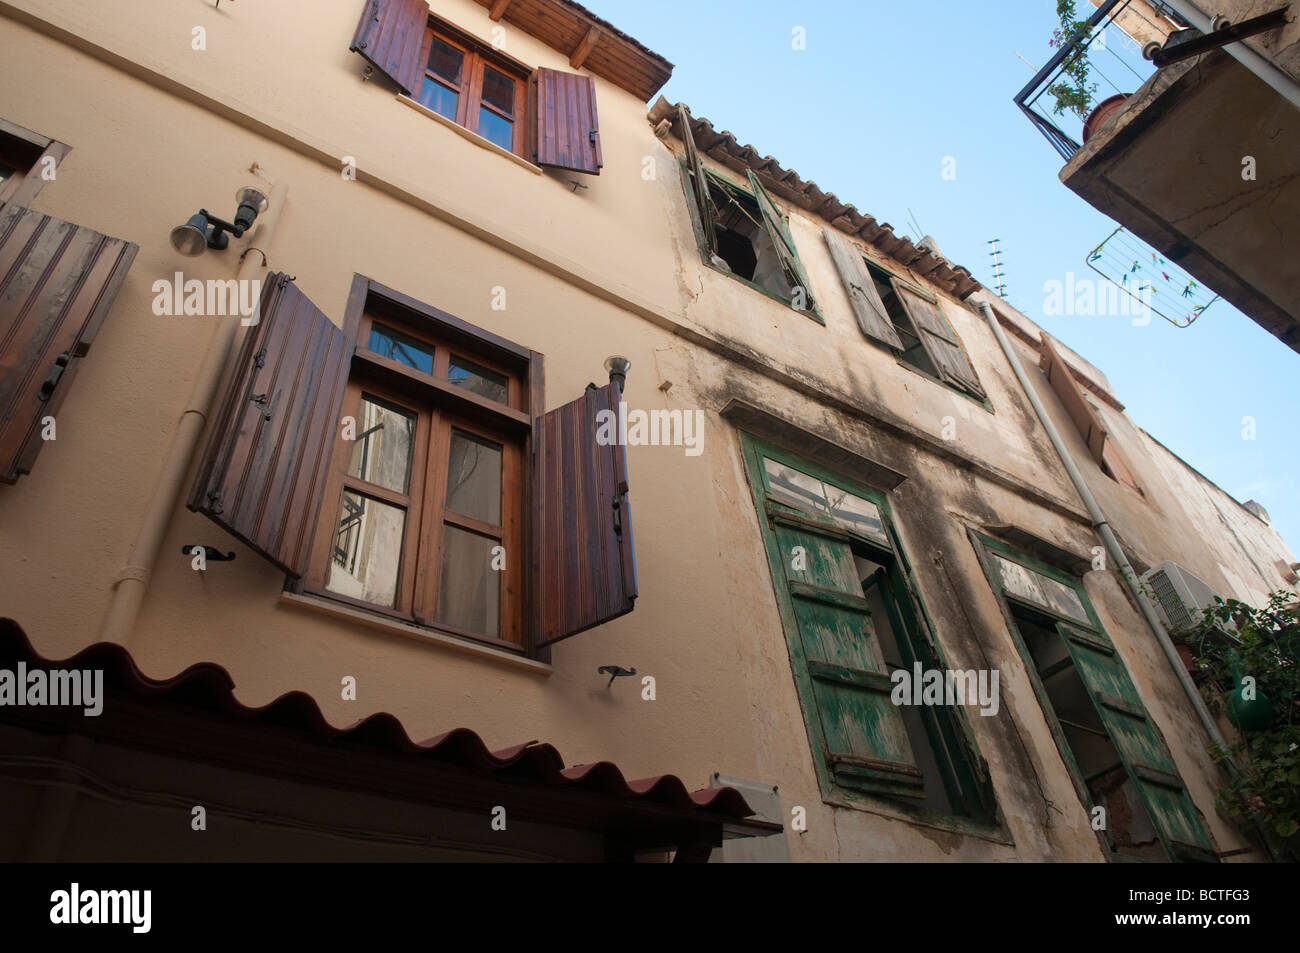 Old building with wooden window shutters. Chania, Crete, Greece. - Stock Image